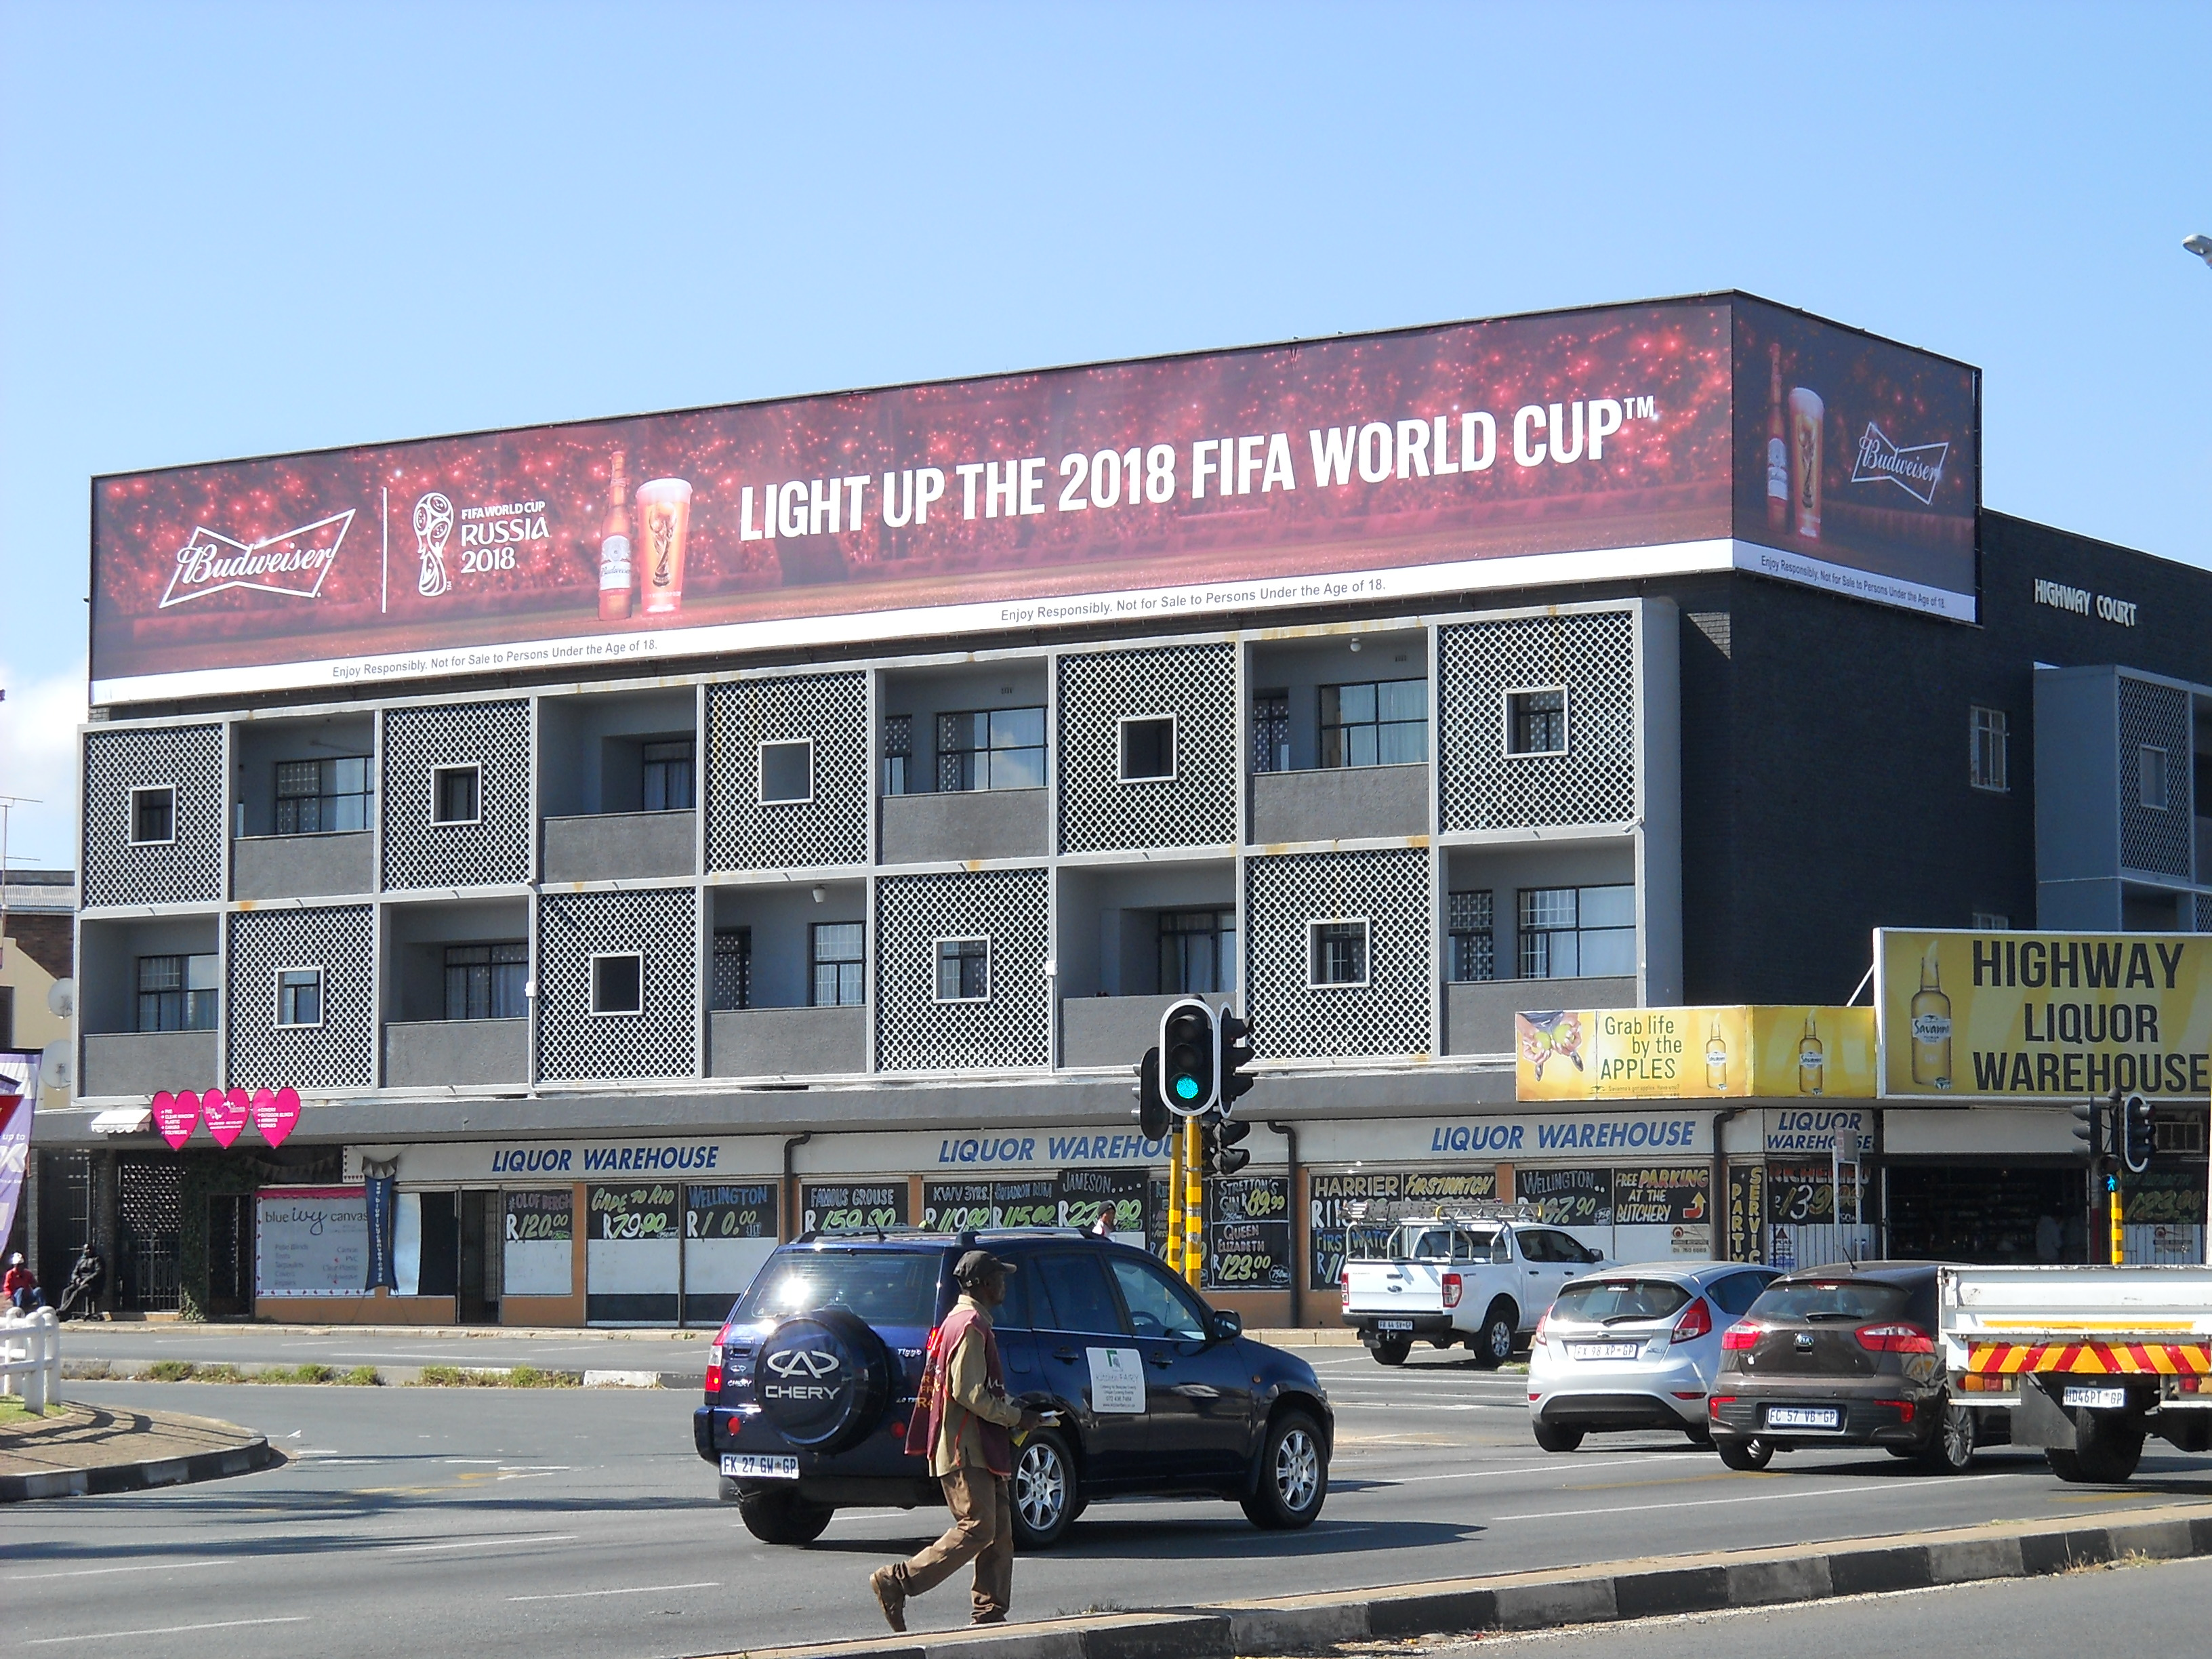 Sky-sign: World Cup Budweiser Campaign.